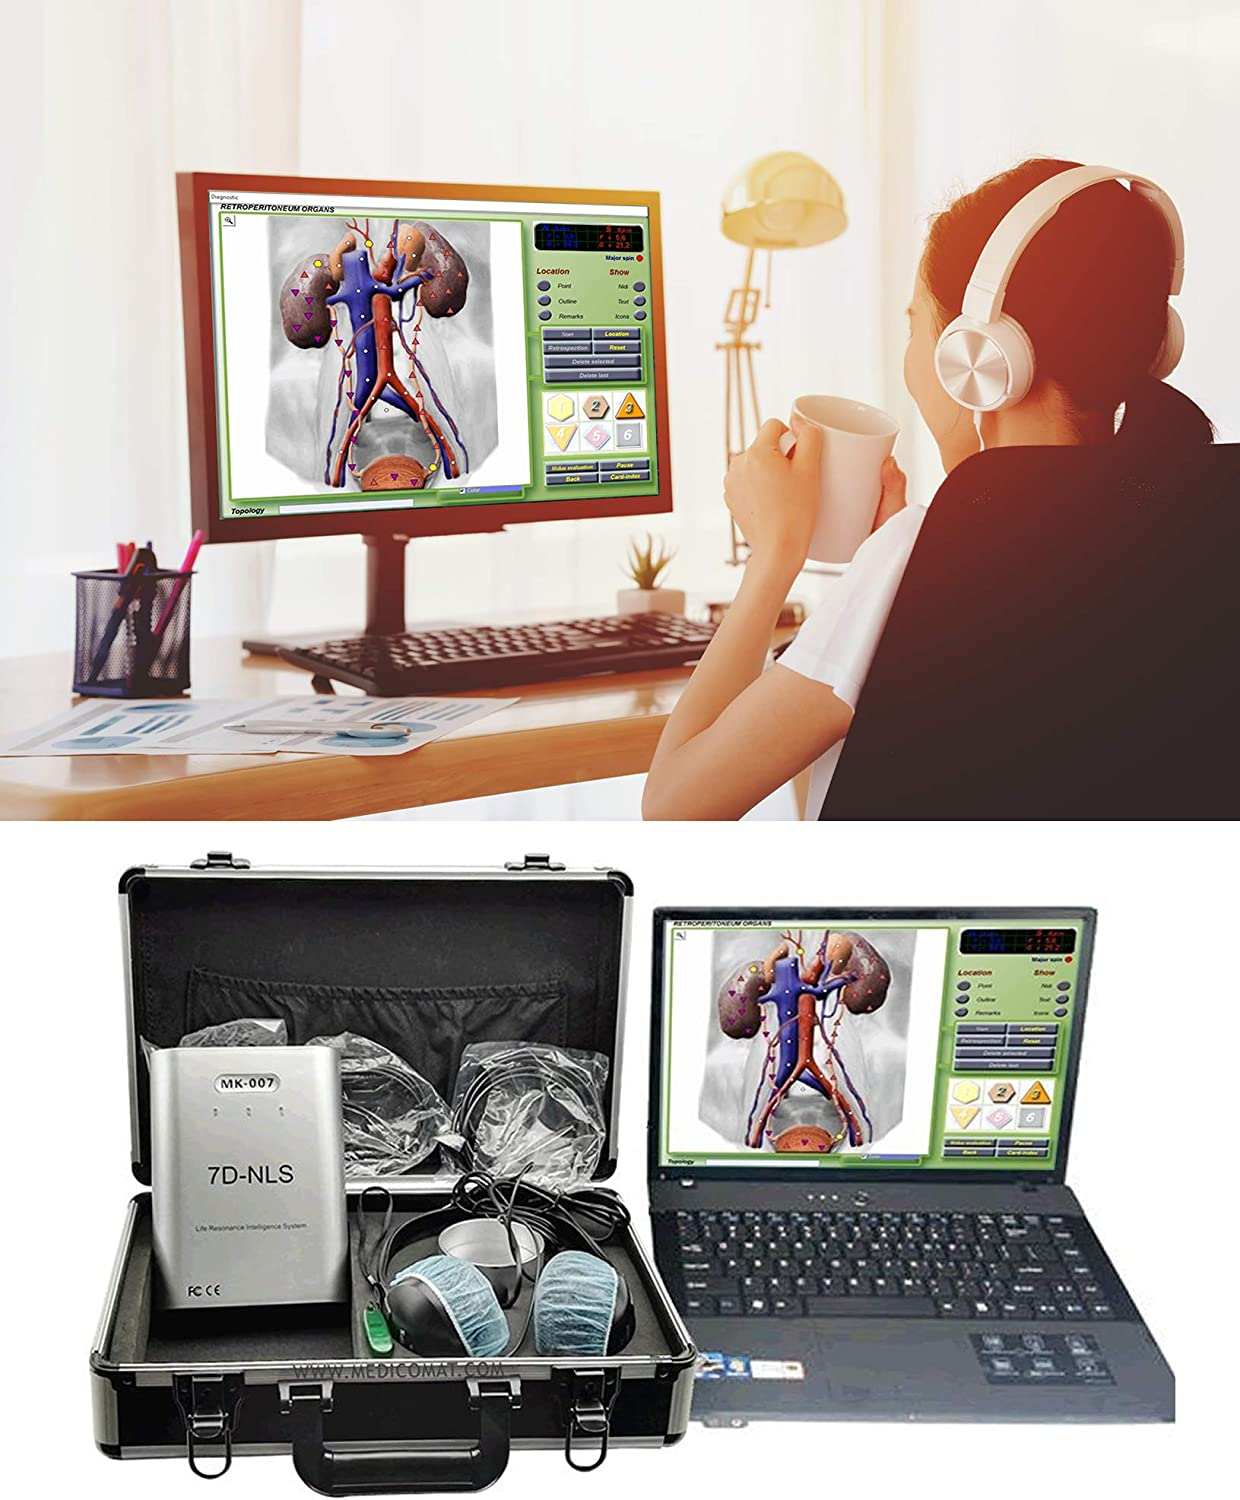 Amazon Com Testing And Treatment Yourself At Home Wellness Program Package Medicomat 7d Nls Wellness Computer Gadgetsfor Test And Therapy Of Physical And Emotional Health Home Audio Theater